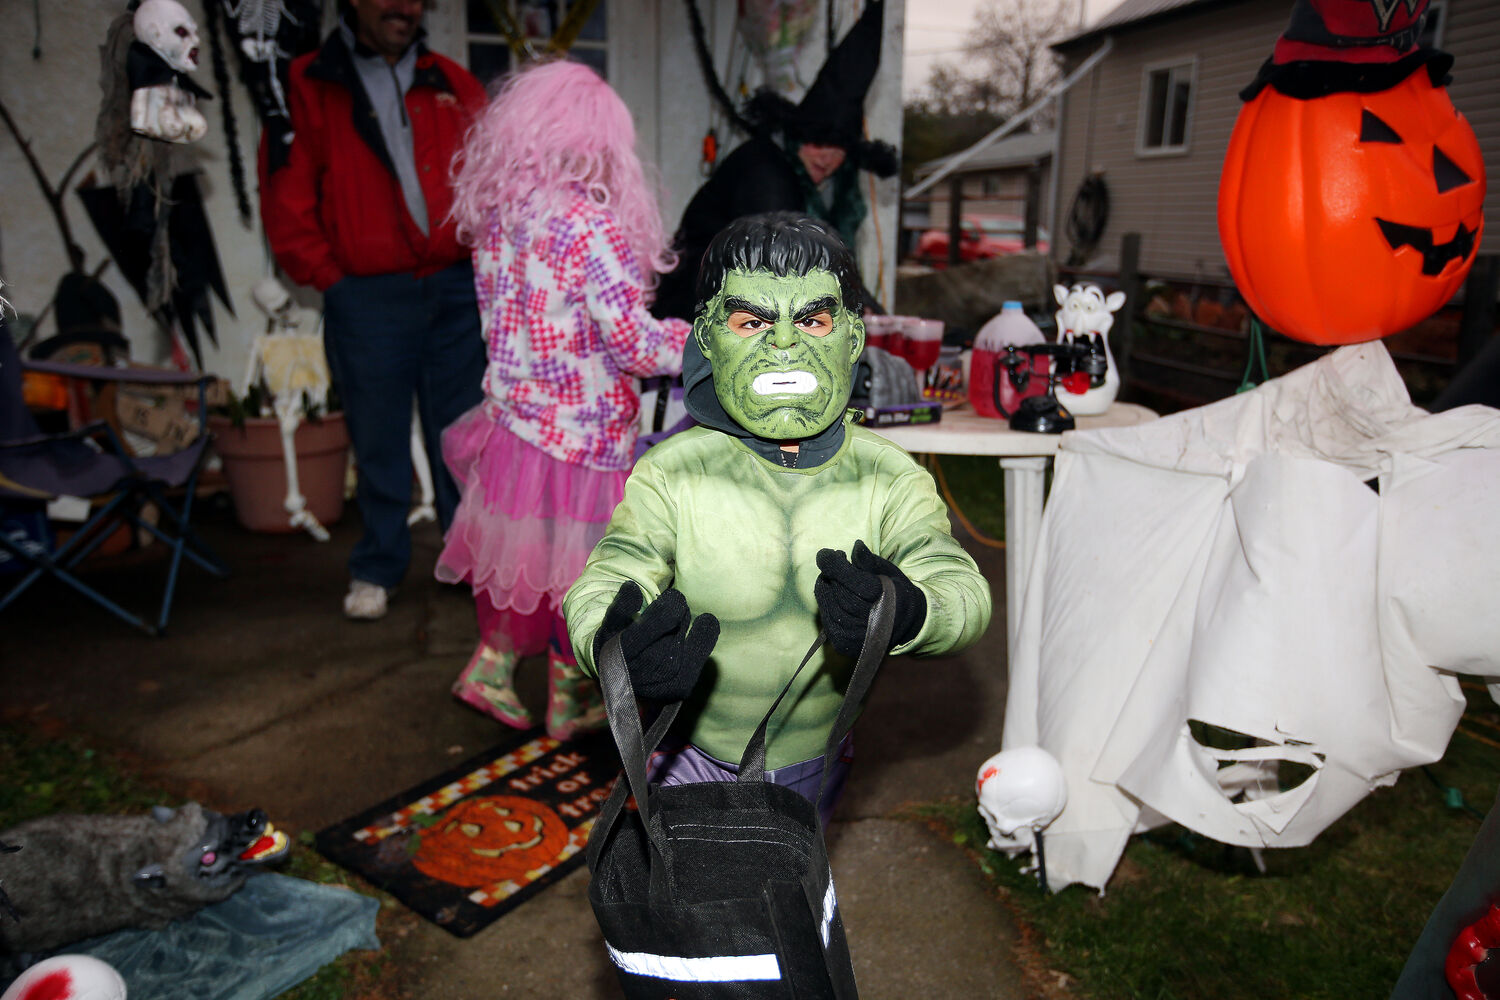 A trick-or-treater heads off in search of more candy after collecting treats at the Sawchuks' home on Saturday evening. (Tim Smith/Brandon Sun)